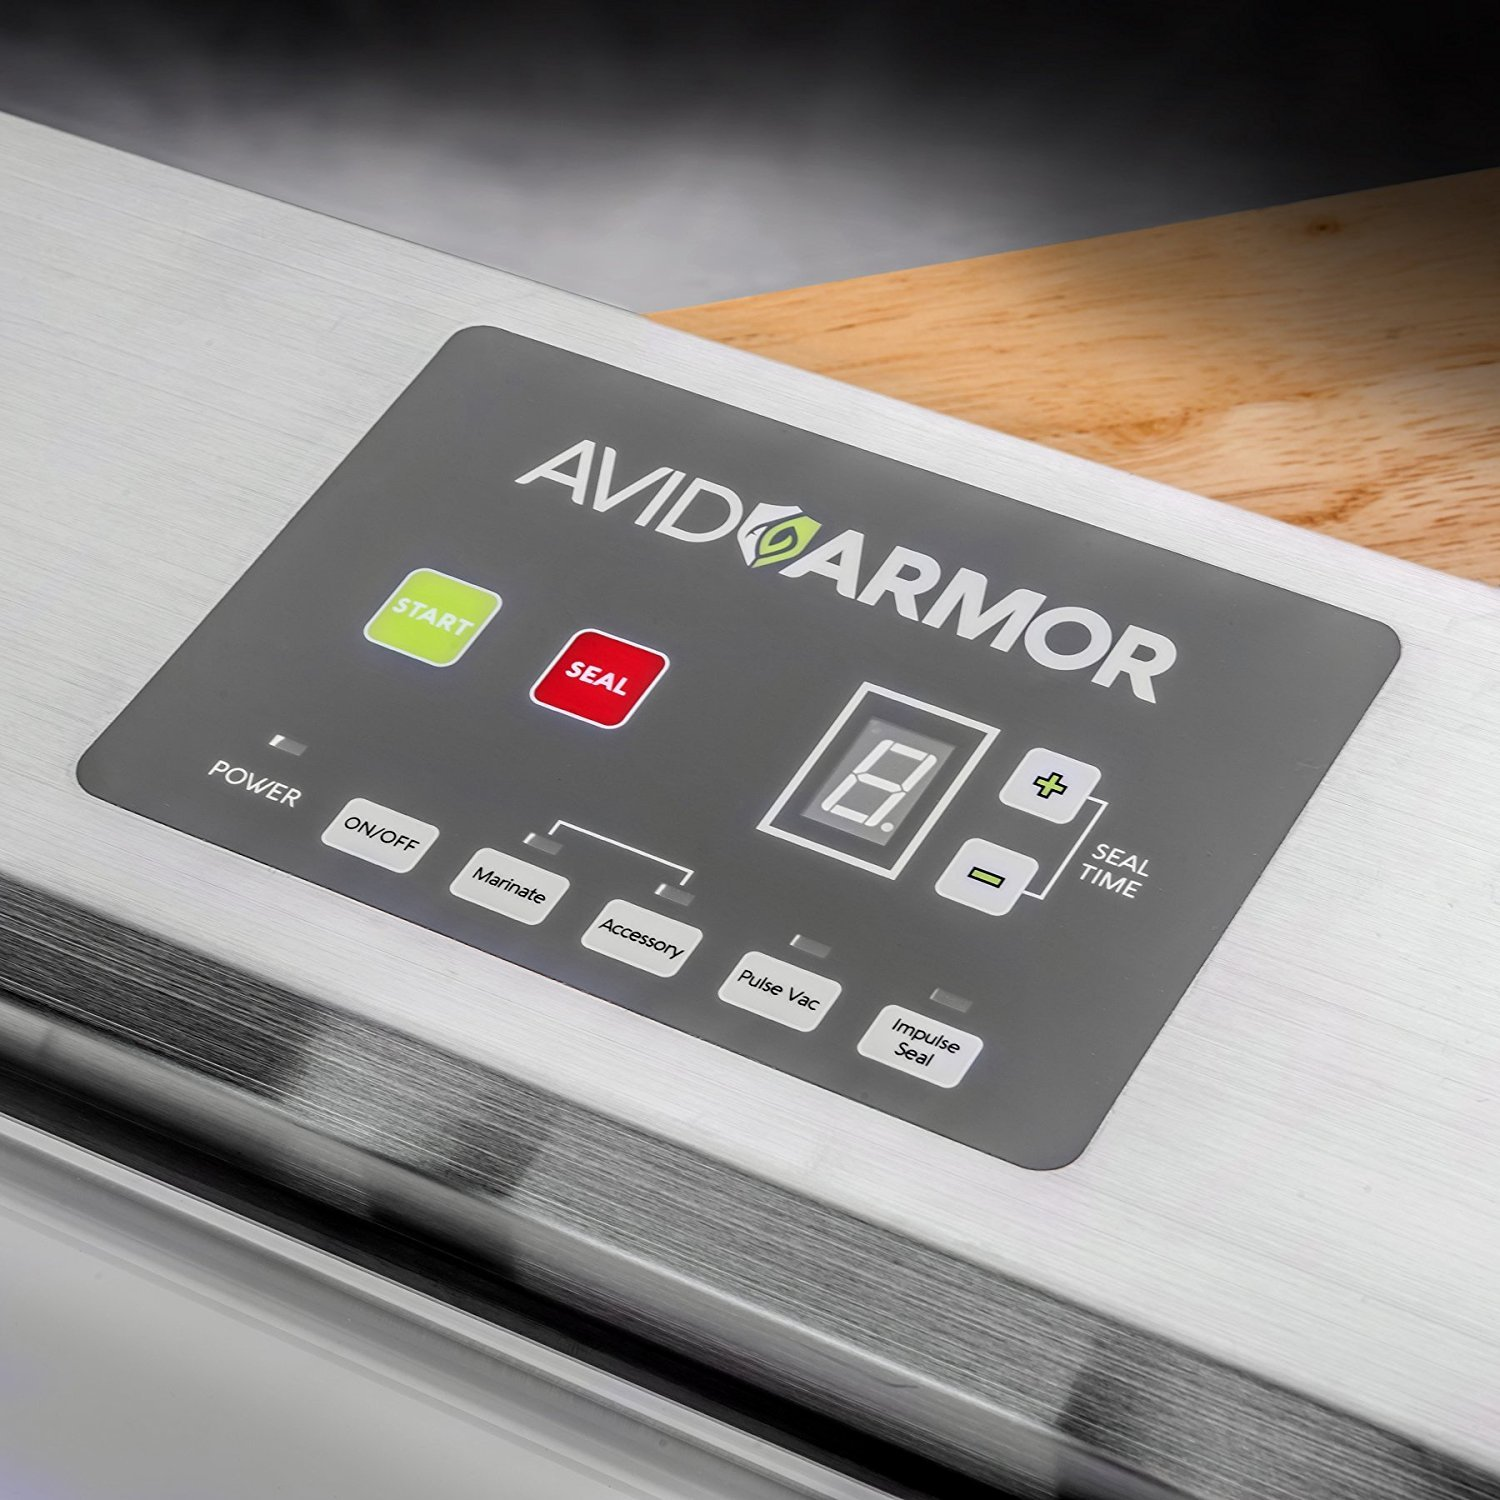 Avid Armor Vacuum Sealer Machine - A100 Stainless Construction, Clear Lid, Commercial Double Piston Pump Heavy Duty 12'' Wide Seal Bar Built in Cooling Fan Includes 30 Pre-cut Bags and Accessory Hose by Avid Armor (Image #4)